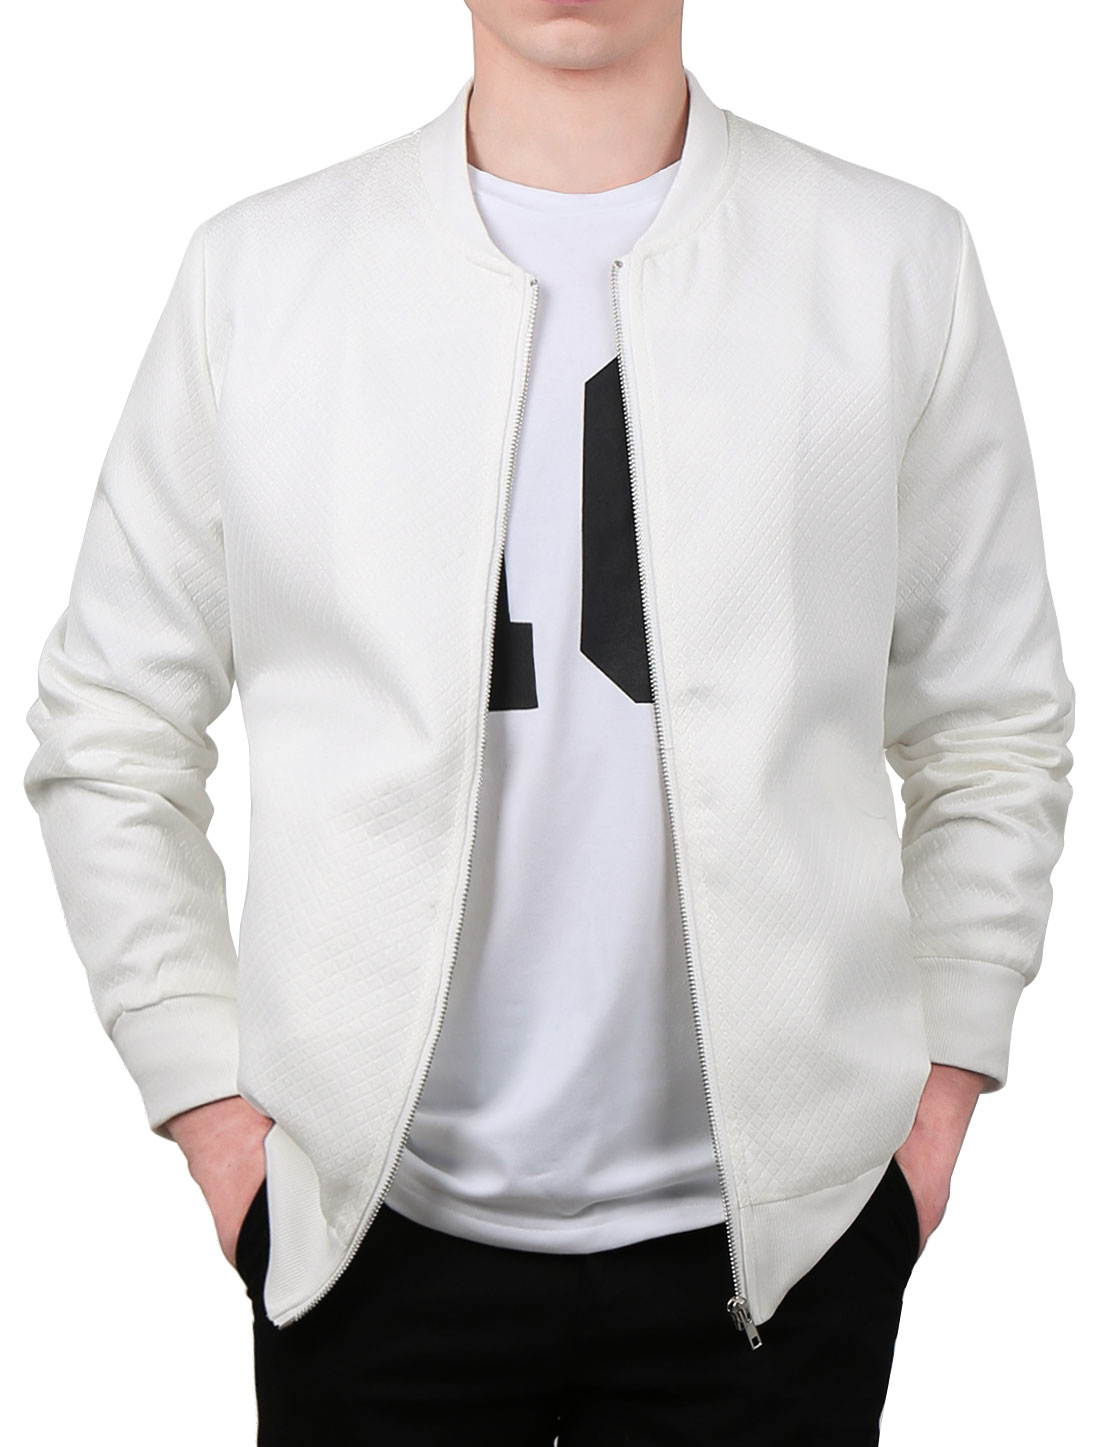 Men Long Sleeve Stand Collar Zipper Slant Pockets Slim Fit Jacket White S